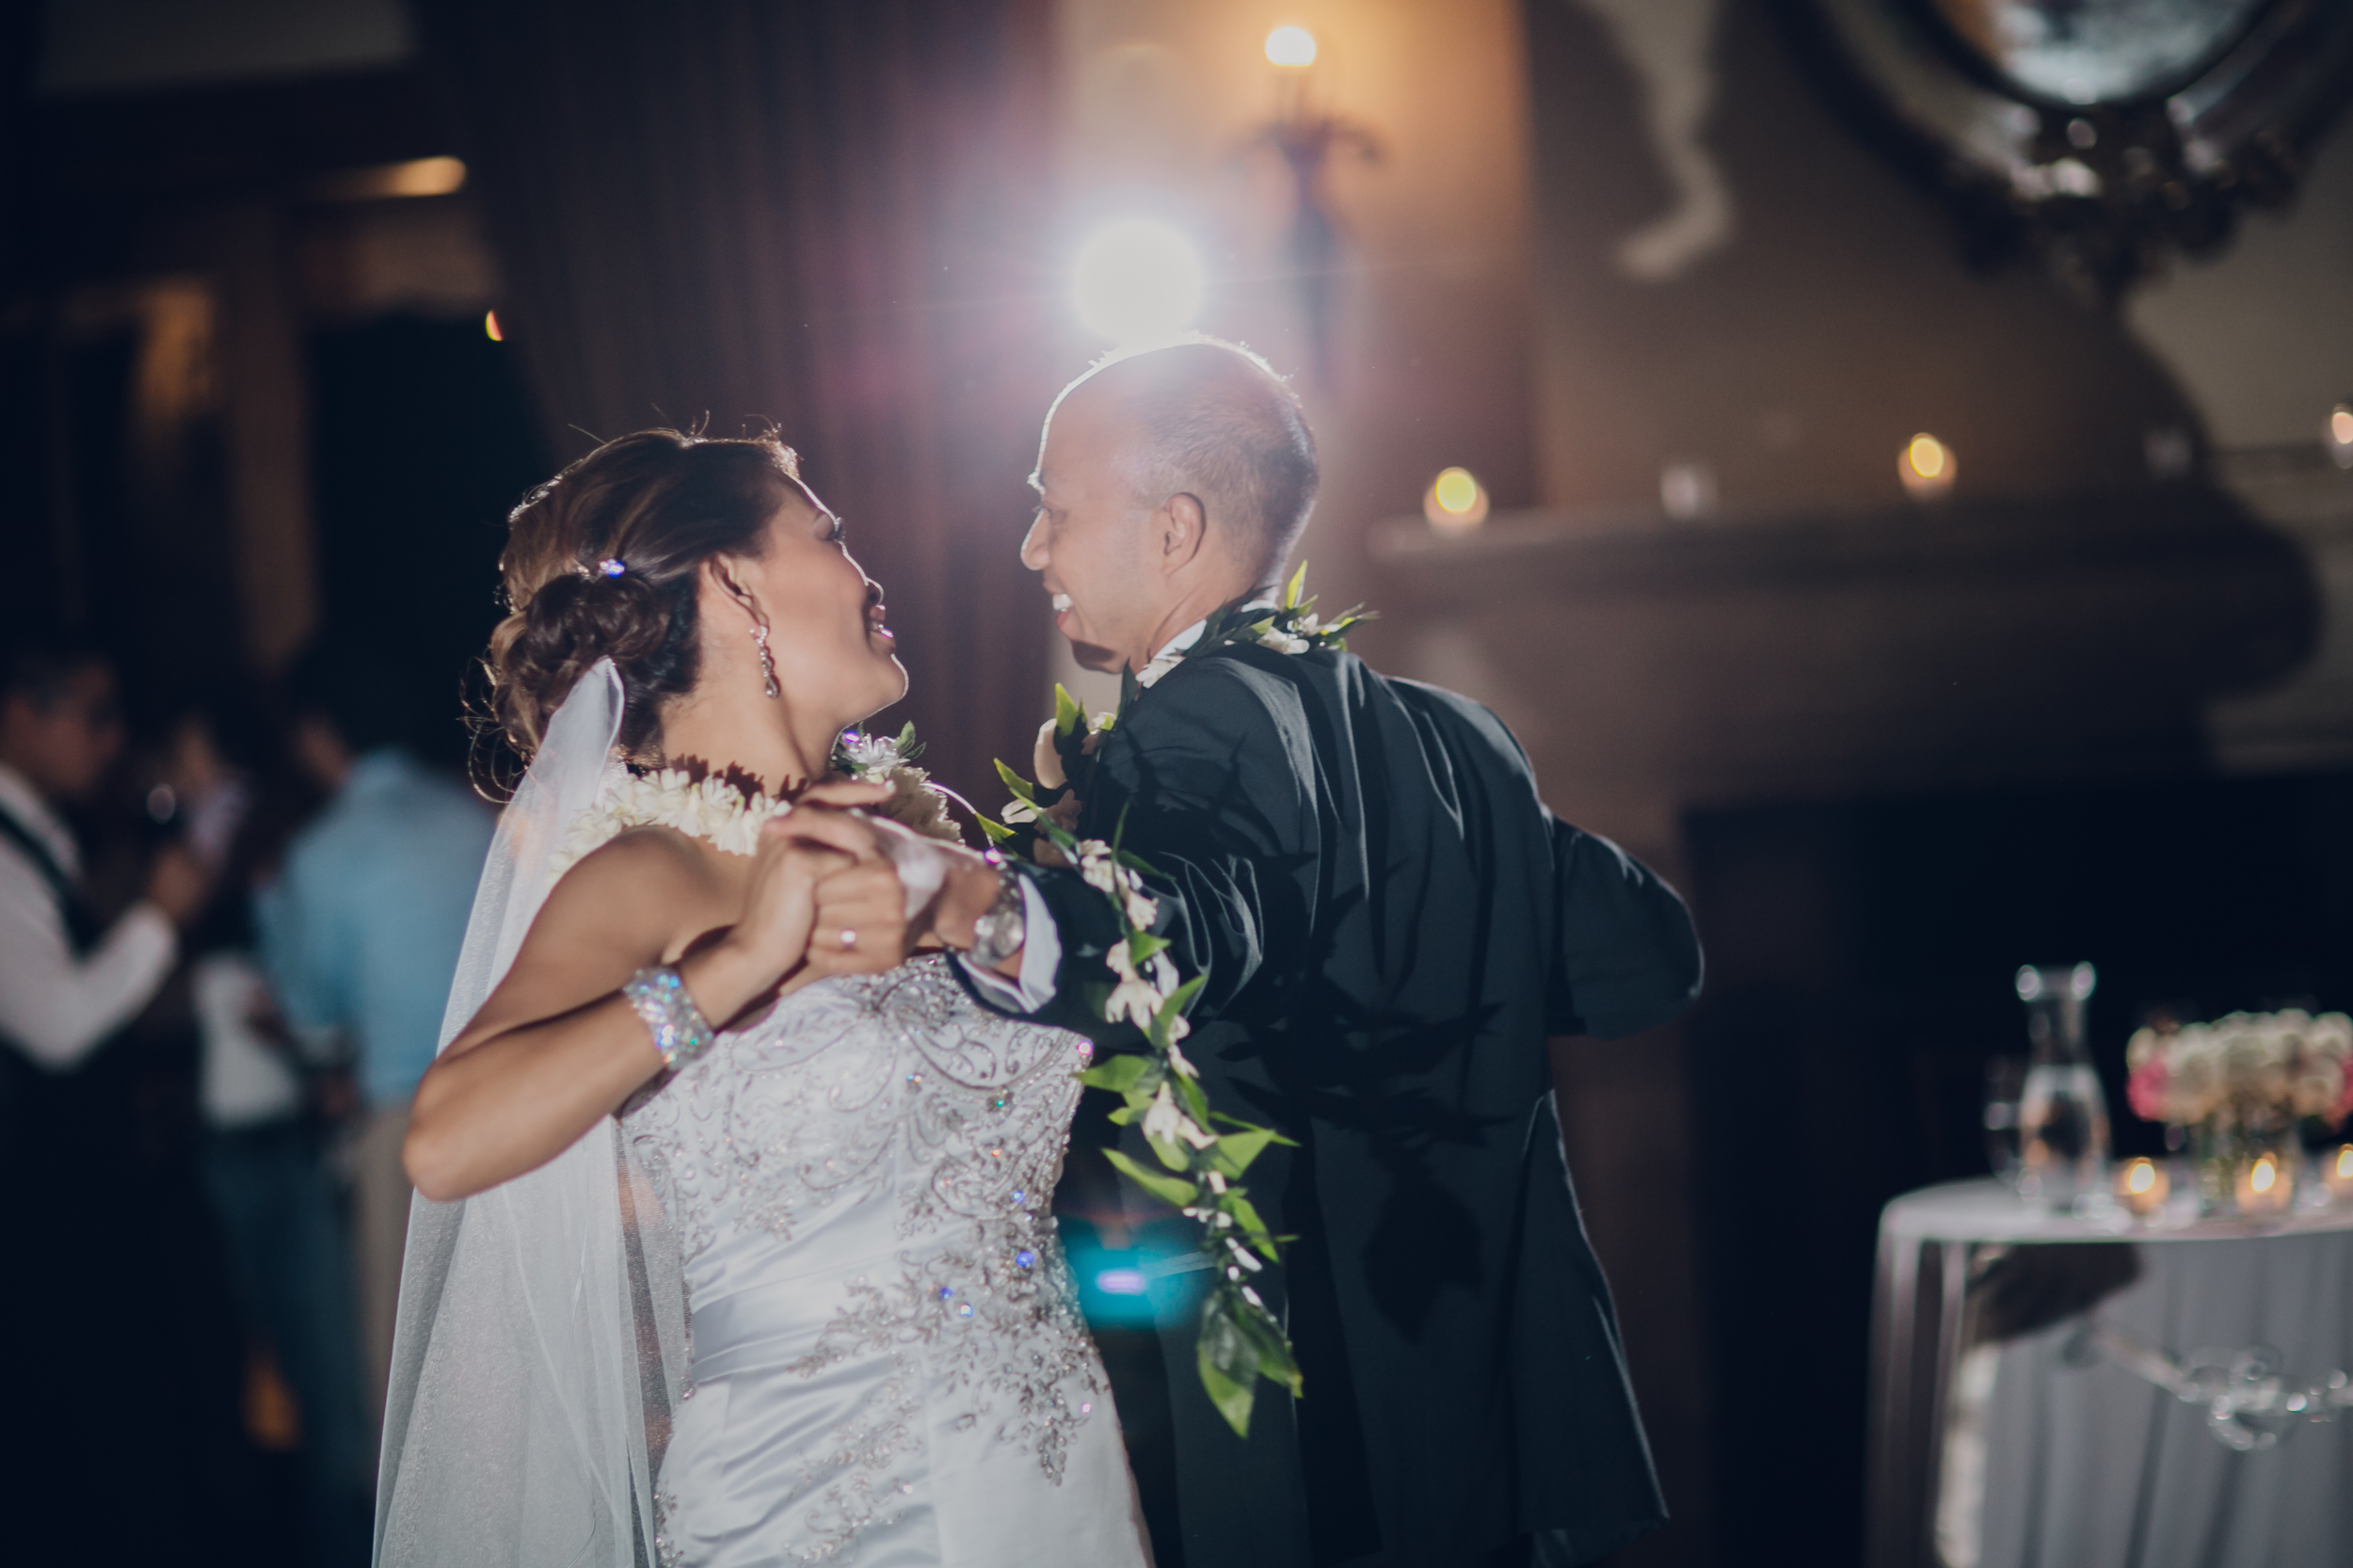 Shiela + Lester's Wedding 9-30-15 318.jpg